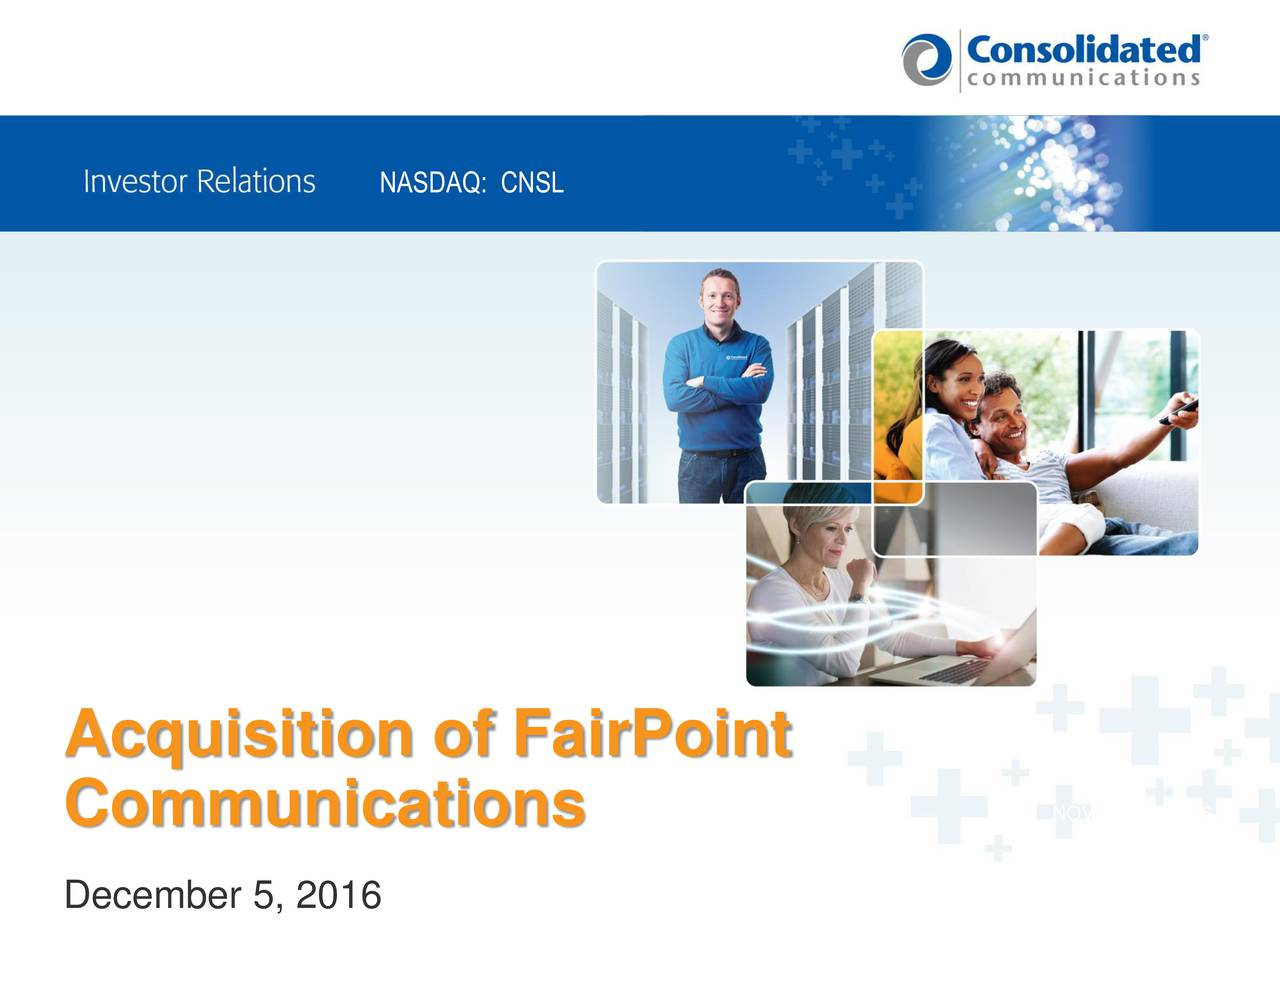 Acquisition of FairPoint Communications NOVEMBER 2016 December 5, 2016